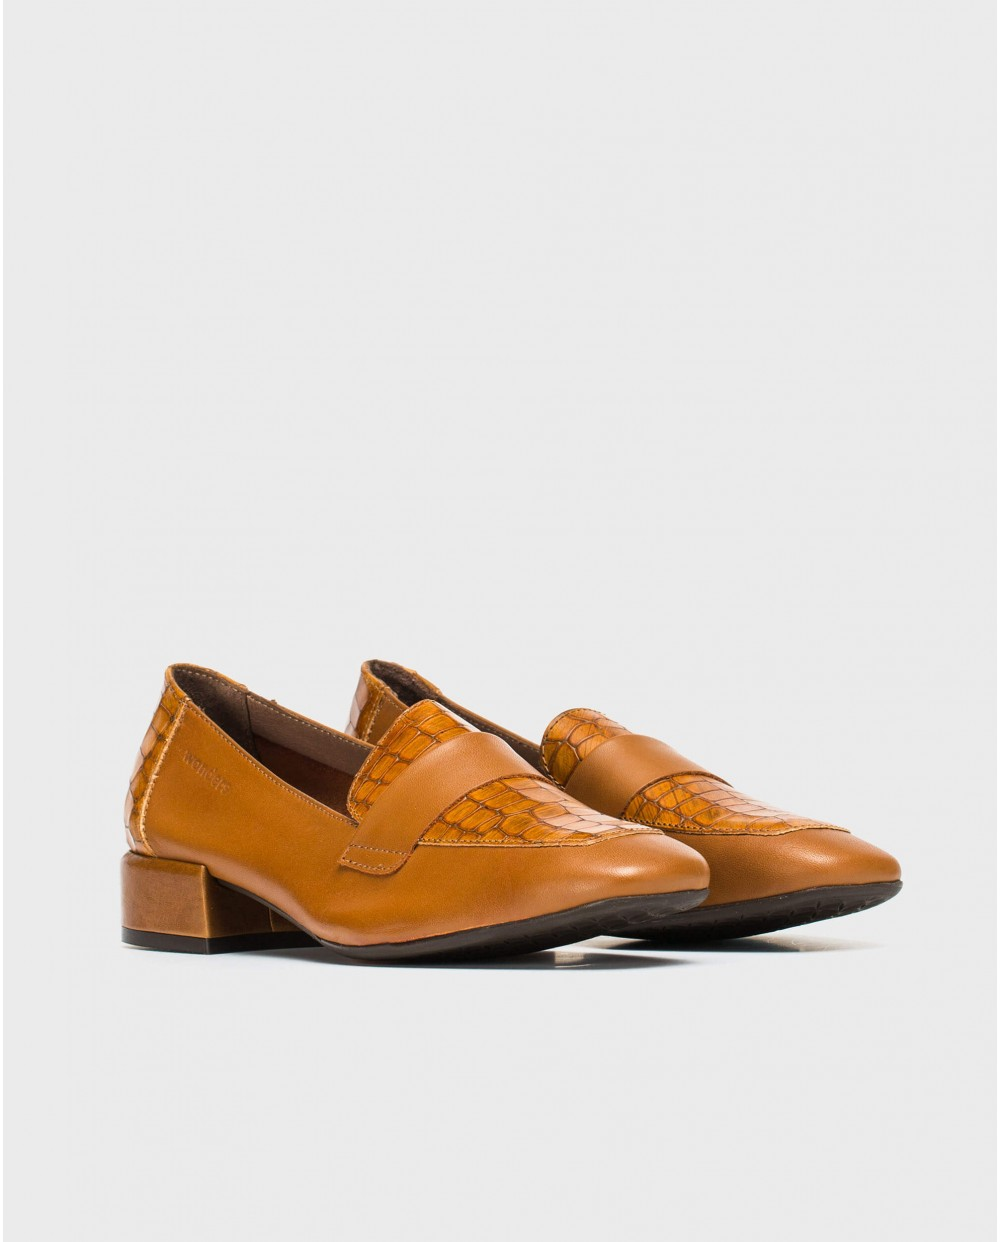 Leather Peny loafer with saddle